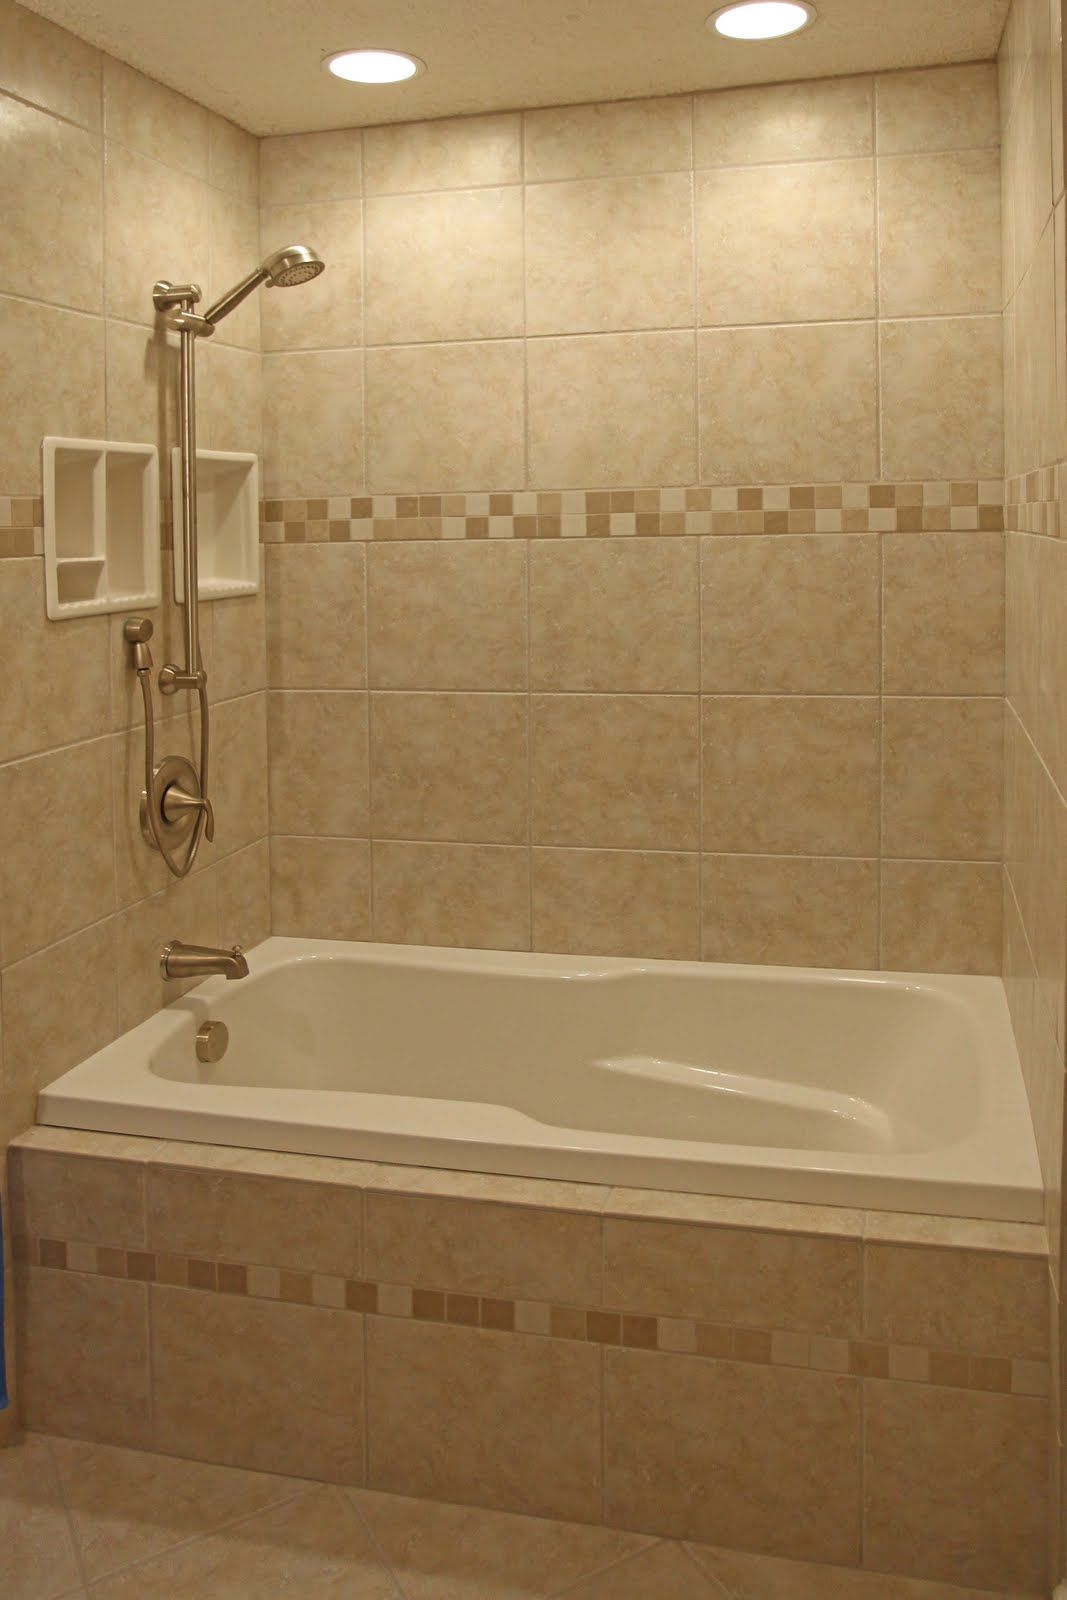 shower and bath remodel | Bathroom Shower Design Ideas » Ceramic ...